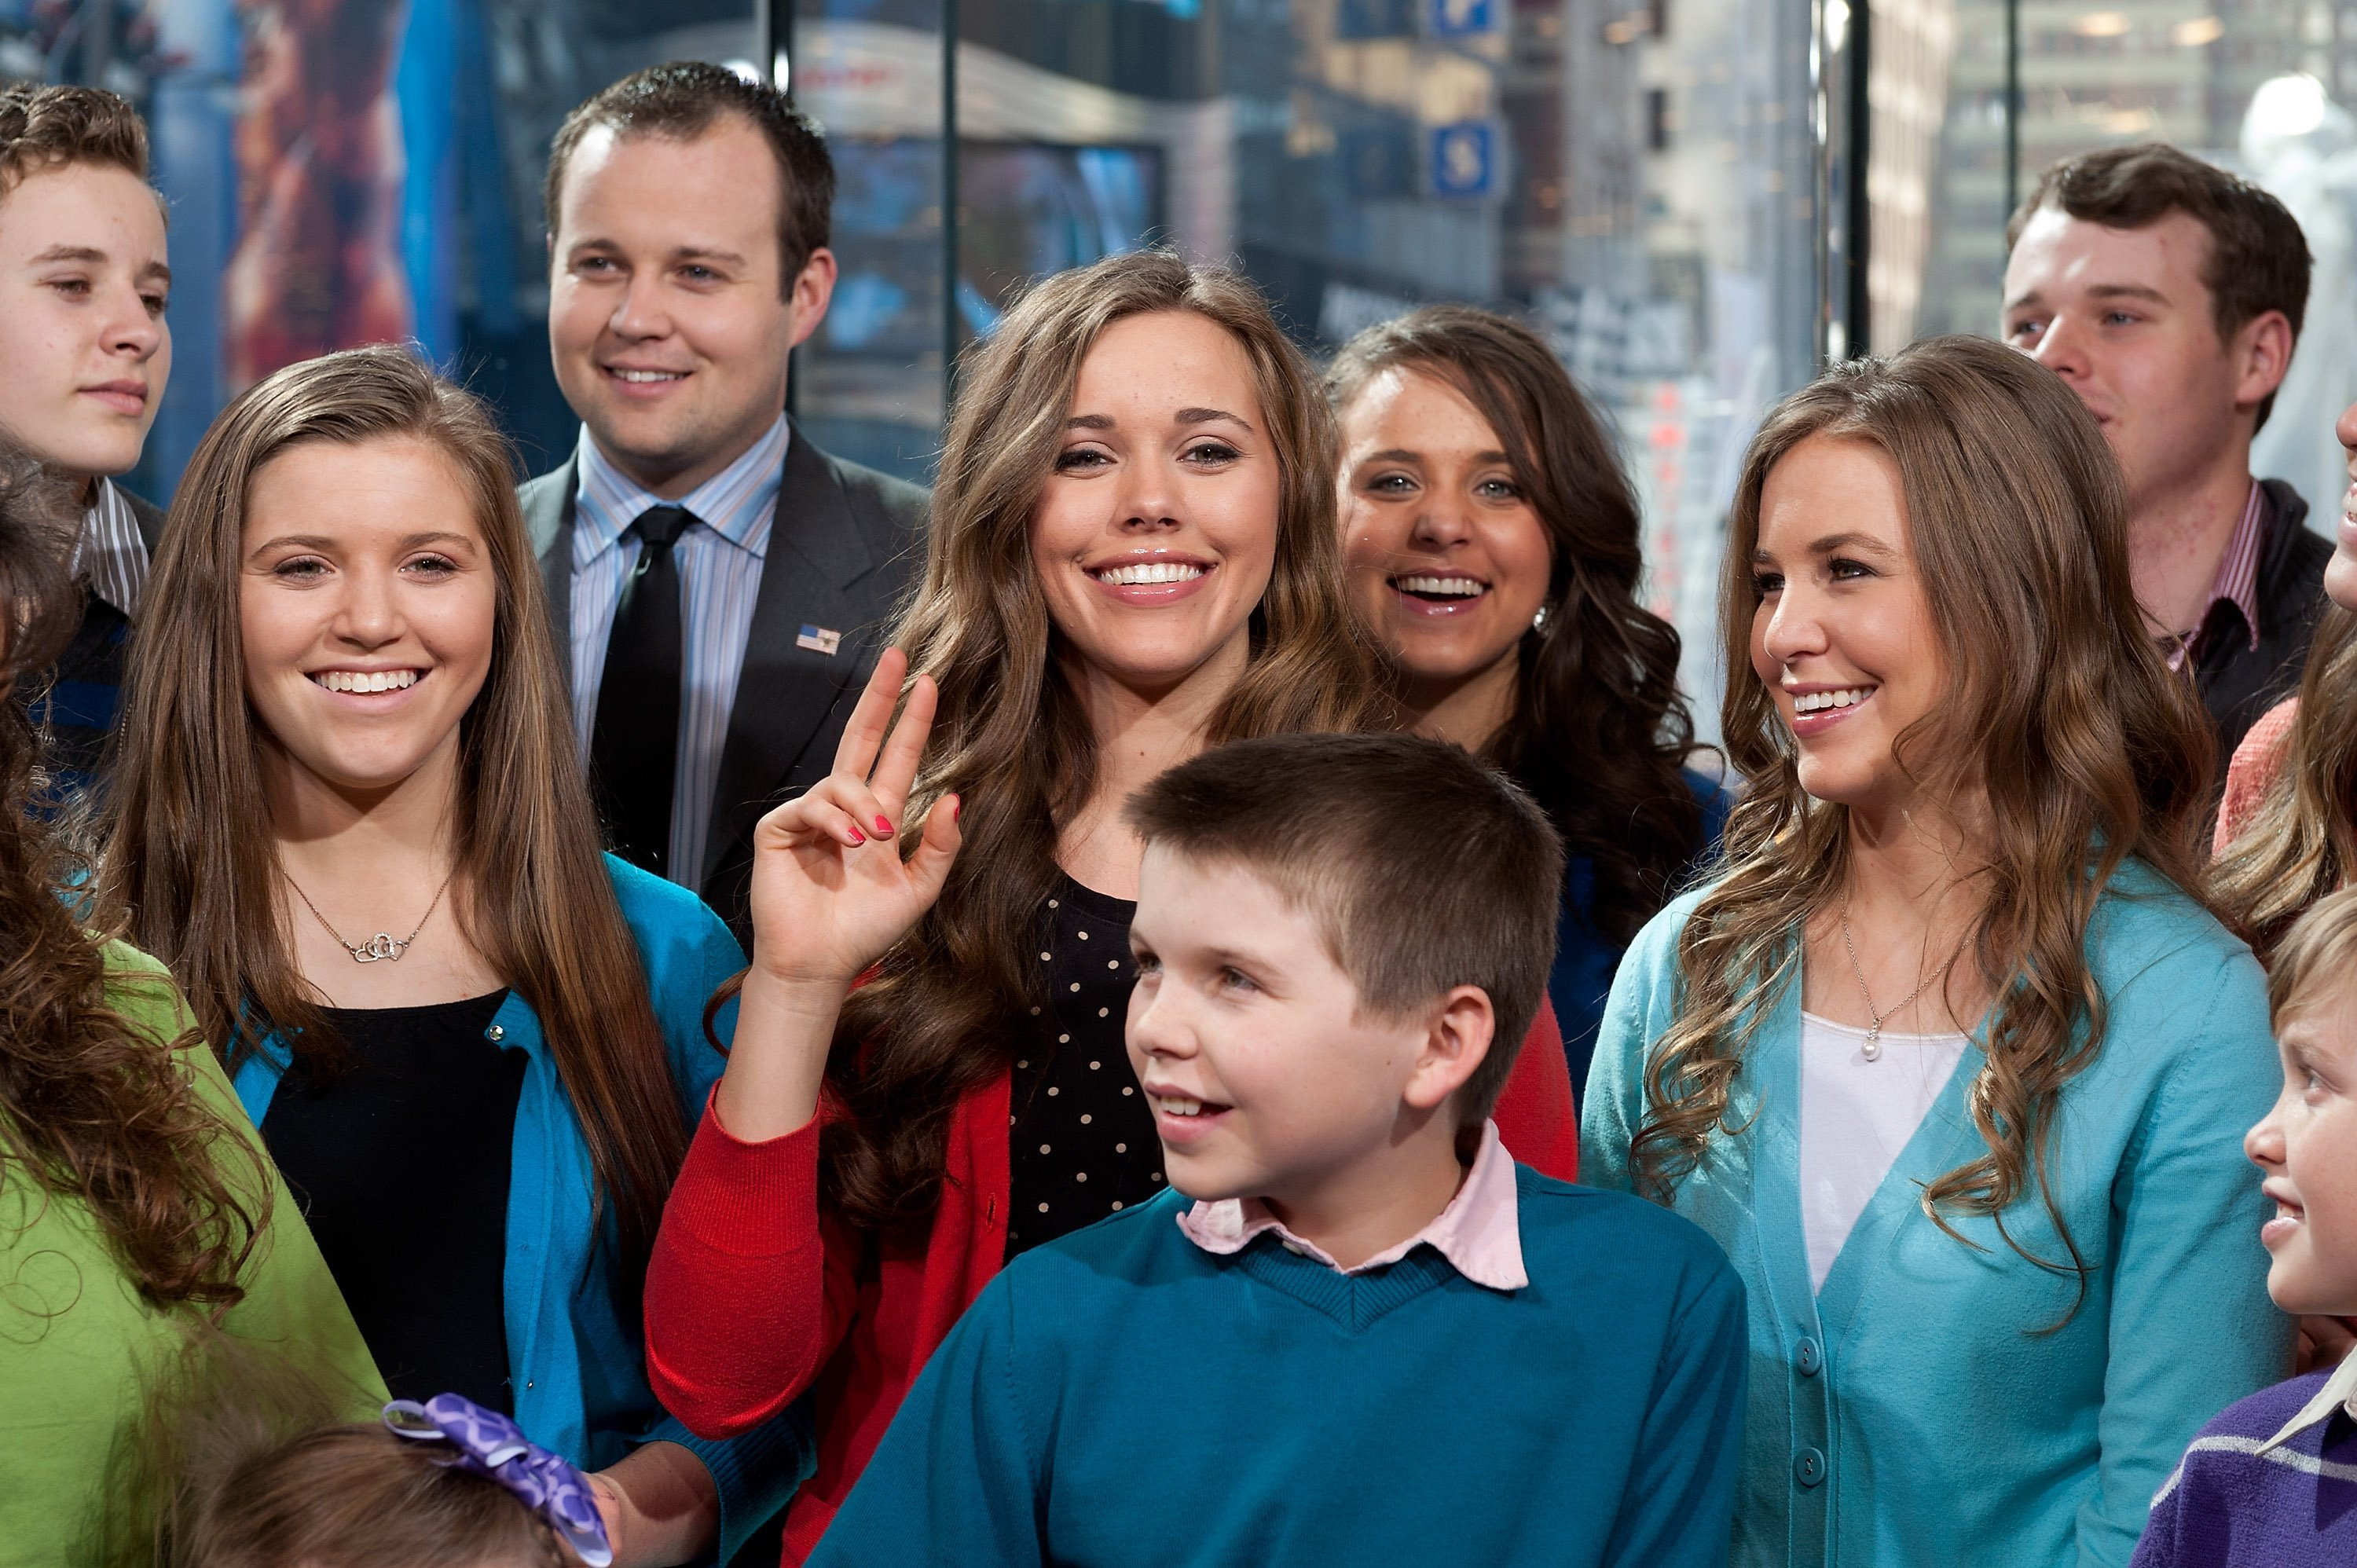 Jessa Duggar and the rest of the Duggar Family on March 11, 2014 in New York City | Photo: Getty Images/Global Images Ukraine